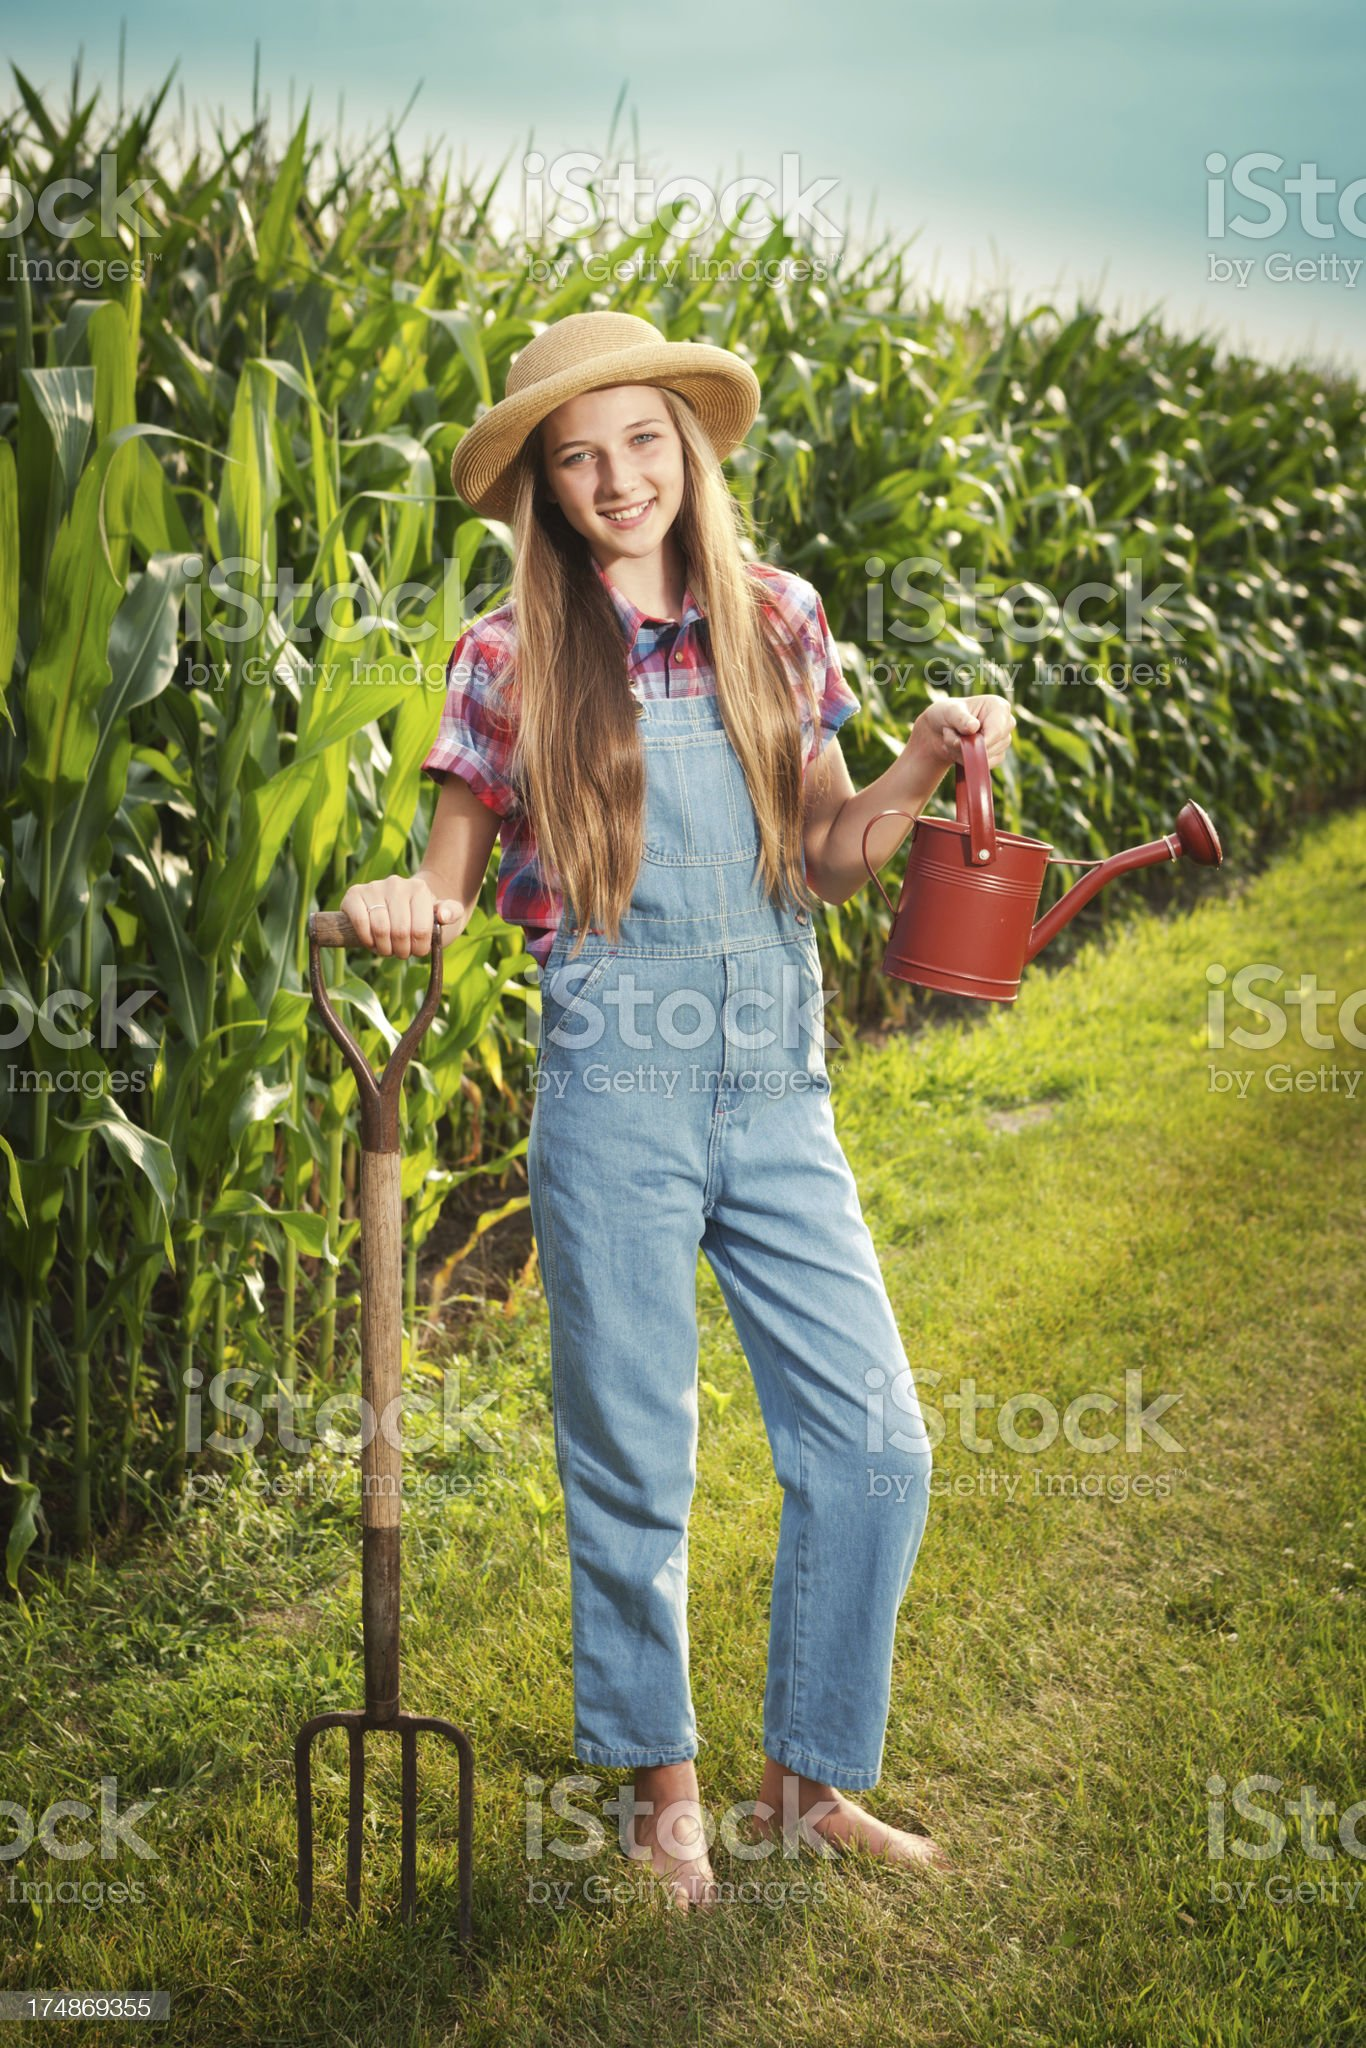 http://media.istockphoto.com/photos/young-farmer-girl-holding-watering-can-by-the-field-vt-picture-id174869355?s=2048x2048